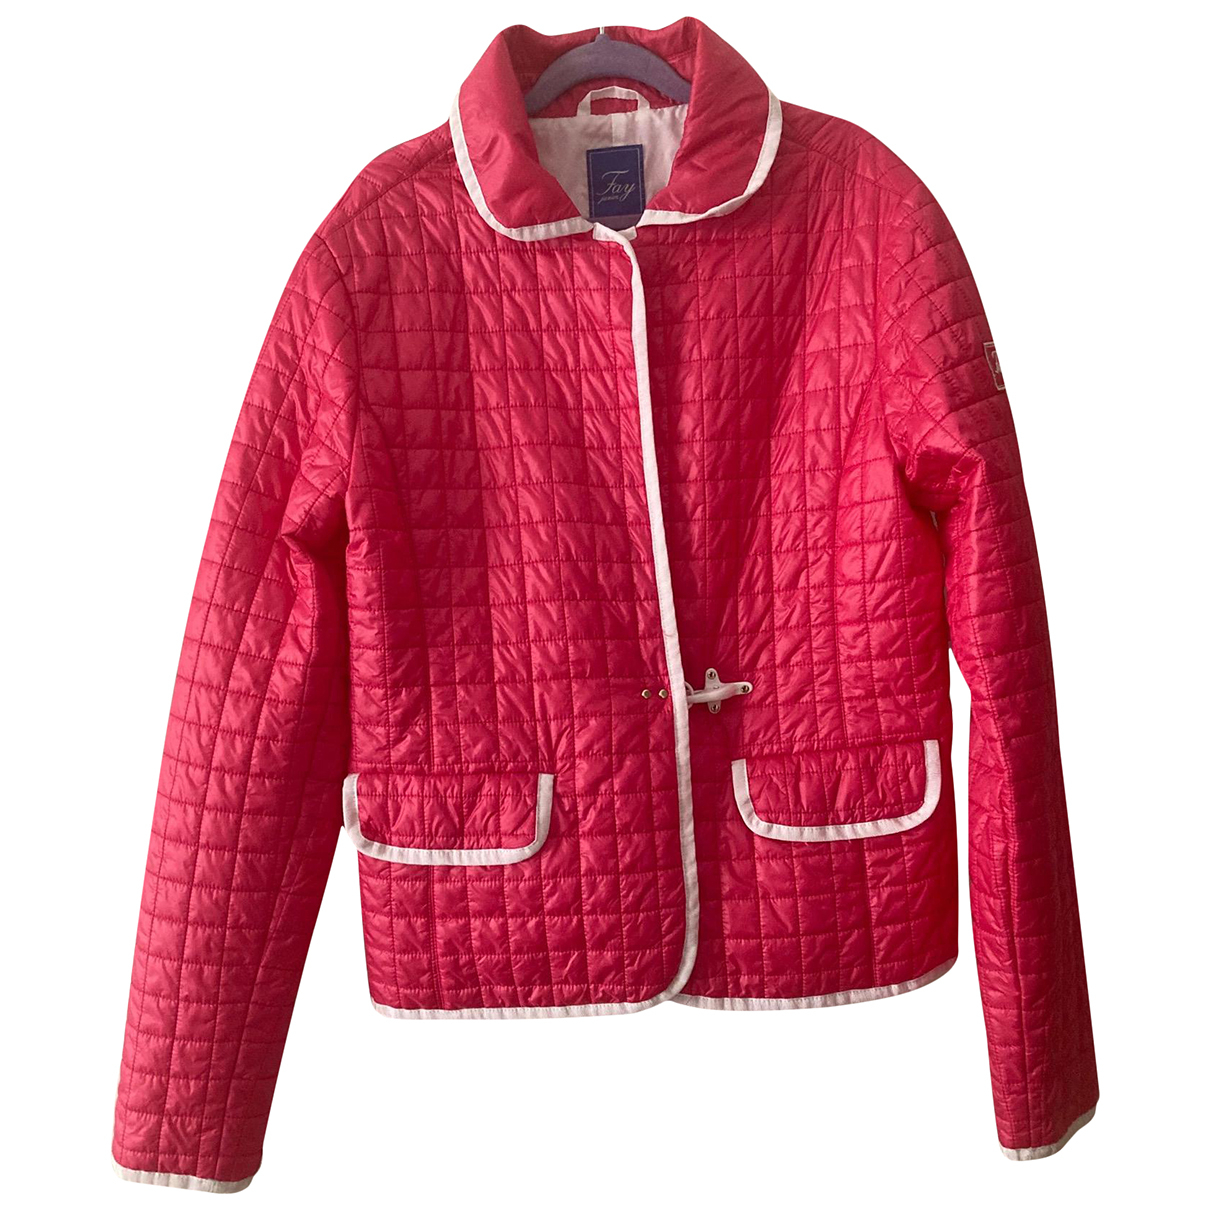 Fay N Pink jacket & coat for Kids 12 years - XS UK